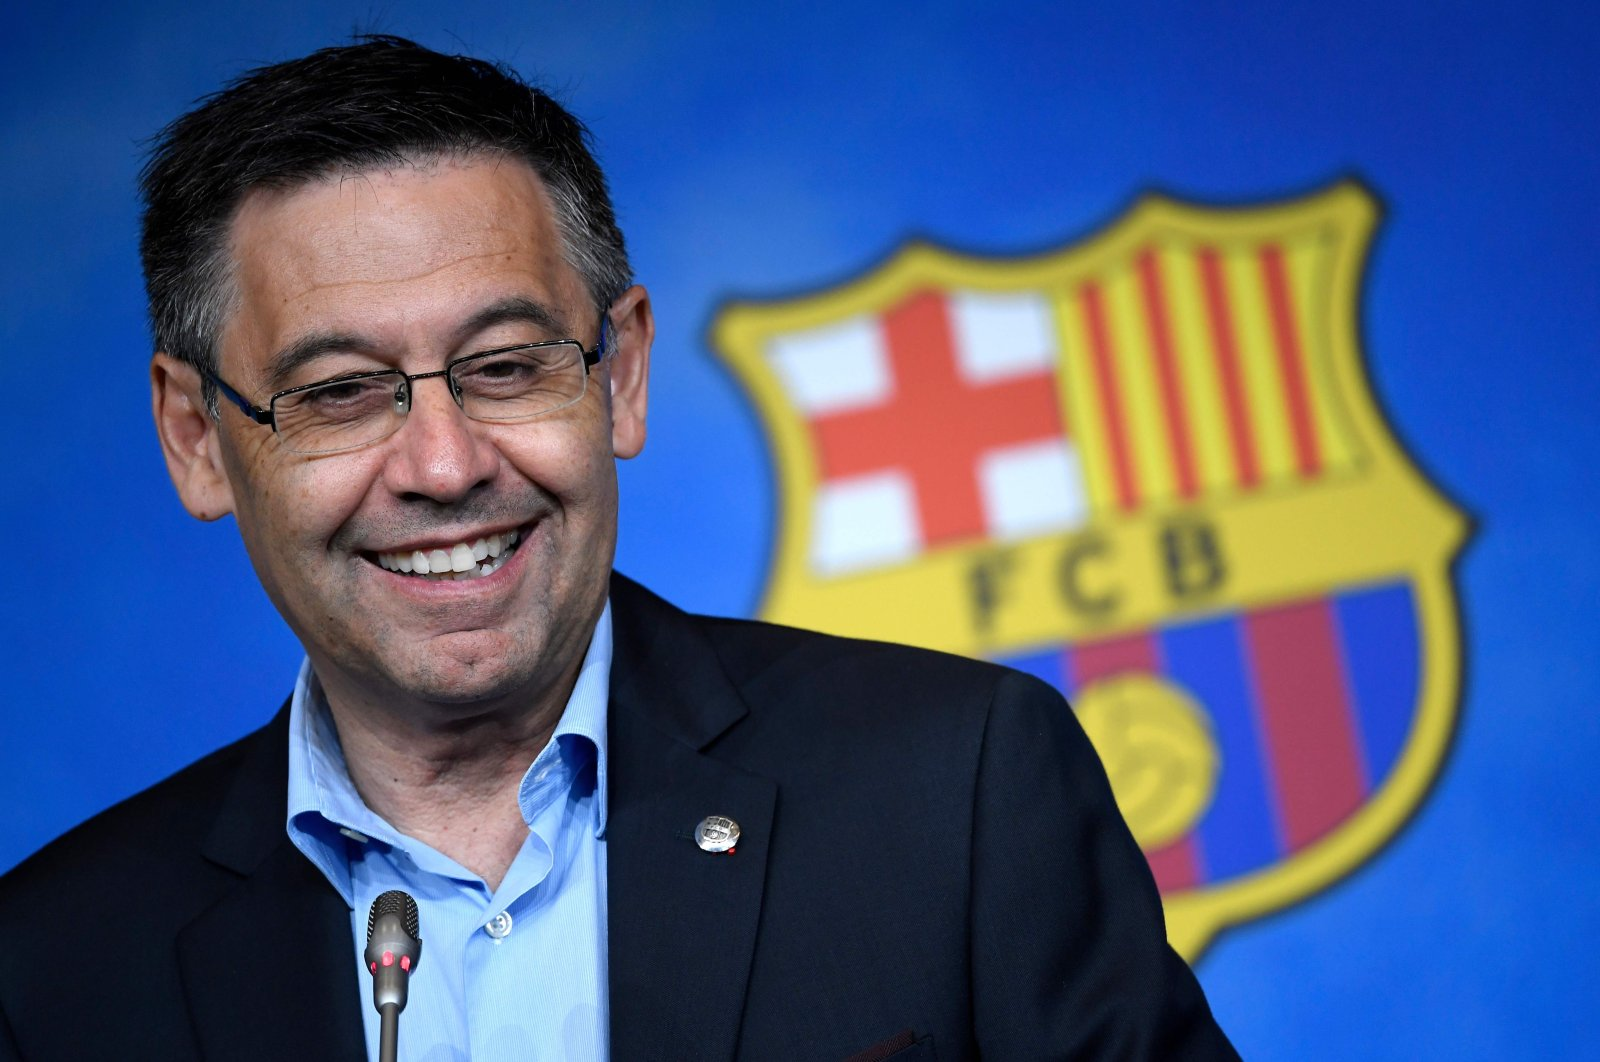 Barcelona's club president Josep Maria Bartomeu reacts during a news conference at the Camp Nou stadium in Barcelona, July 5, 2019. (AFP Photo)